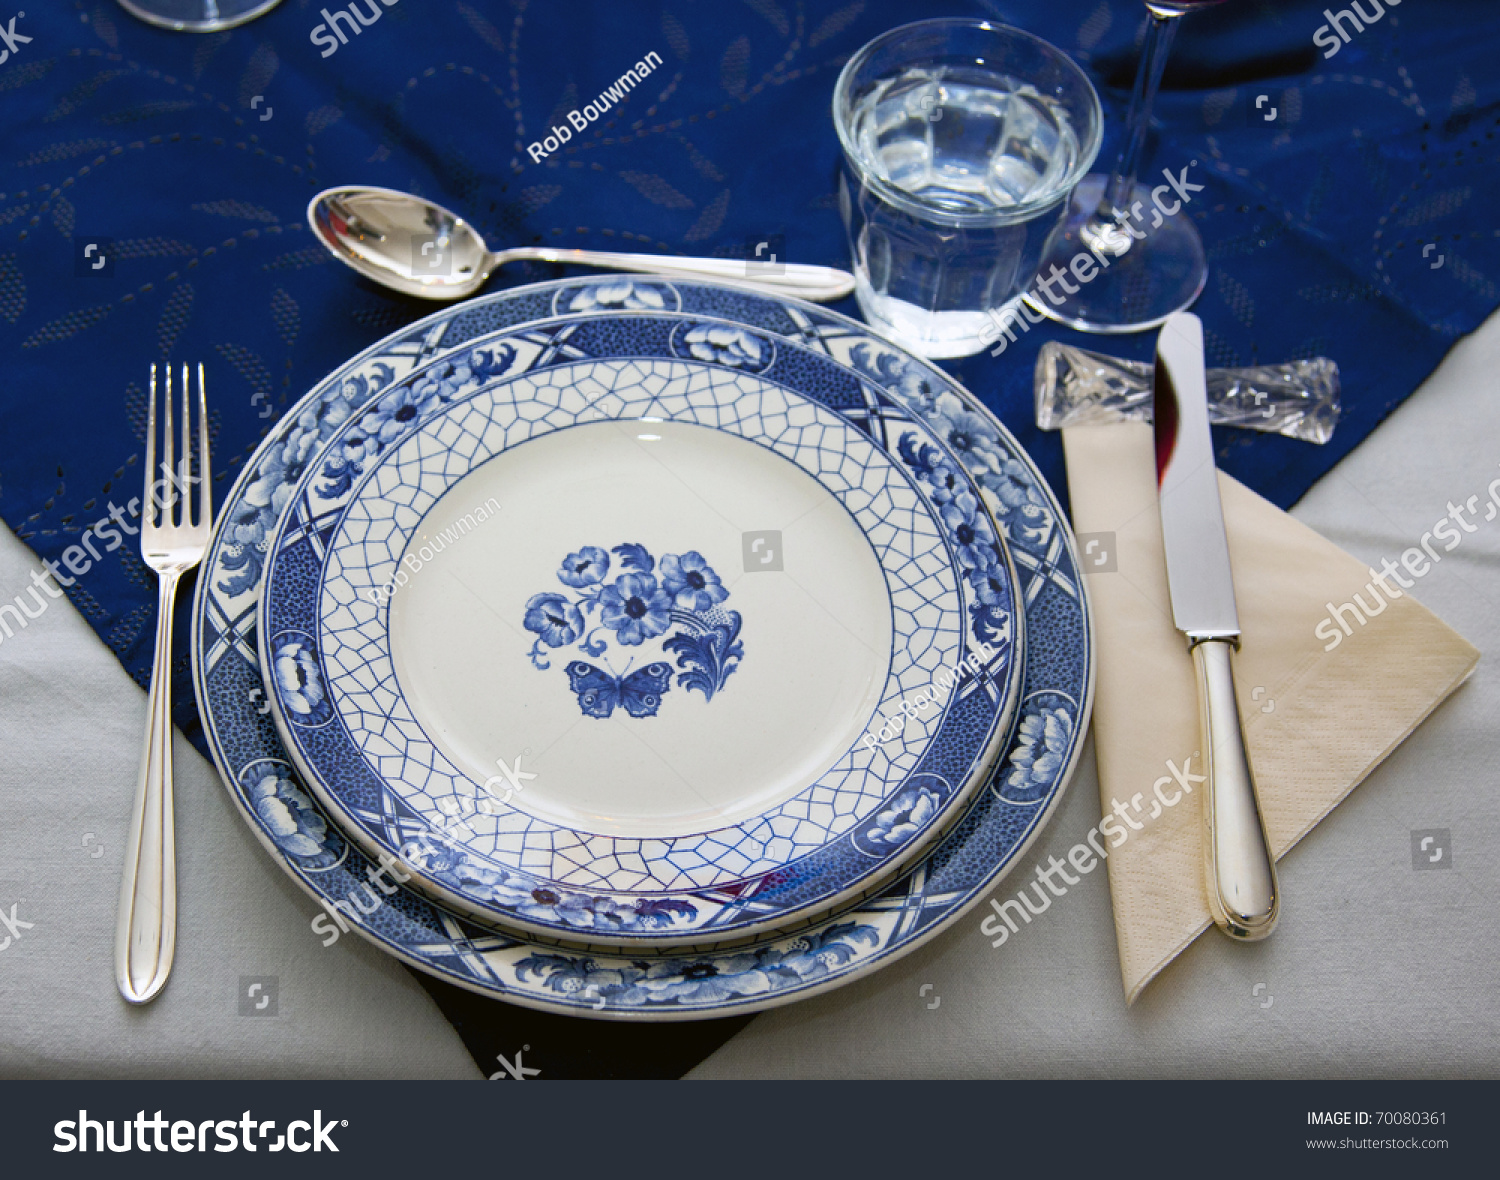 Setting A Dinner Table Table Setting Dinner Table Stock Photo 70080361 Shutterstock